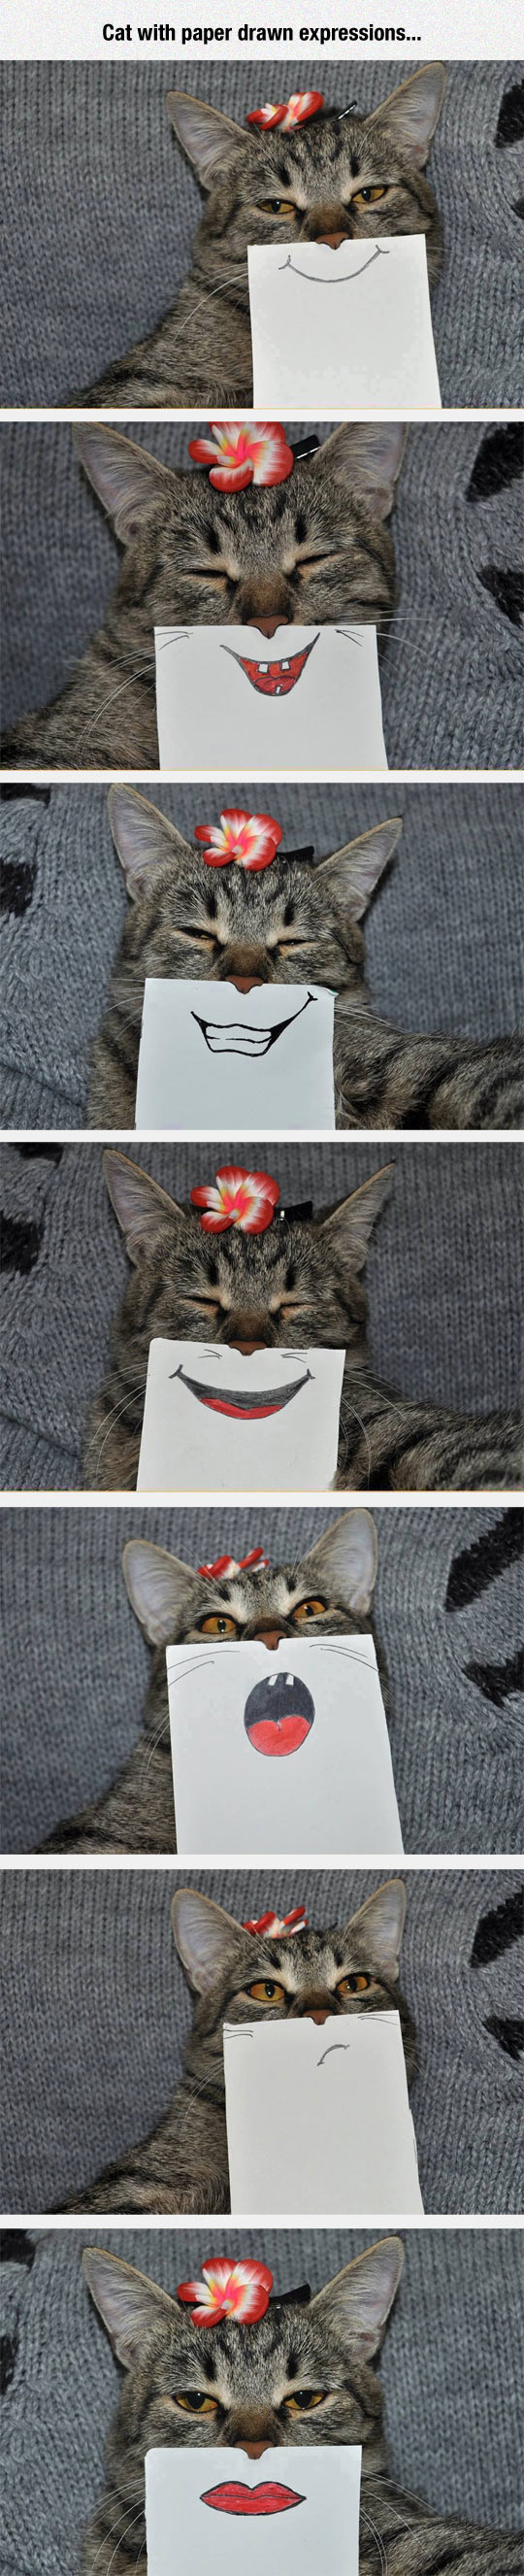 funny-cat-drawing-mouth-expressions